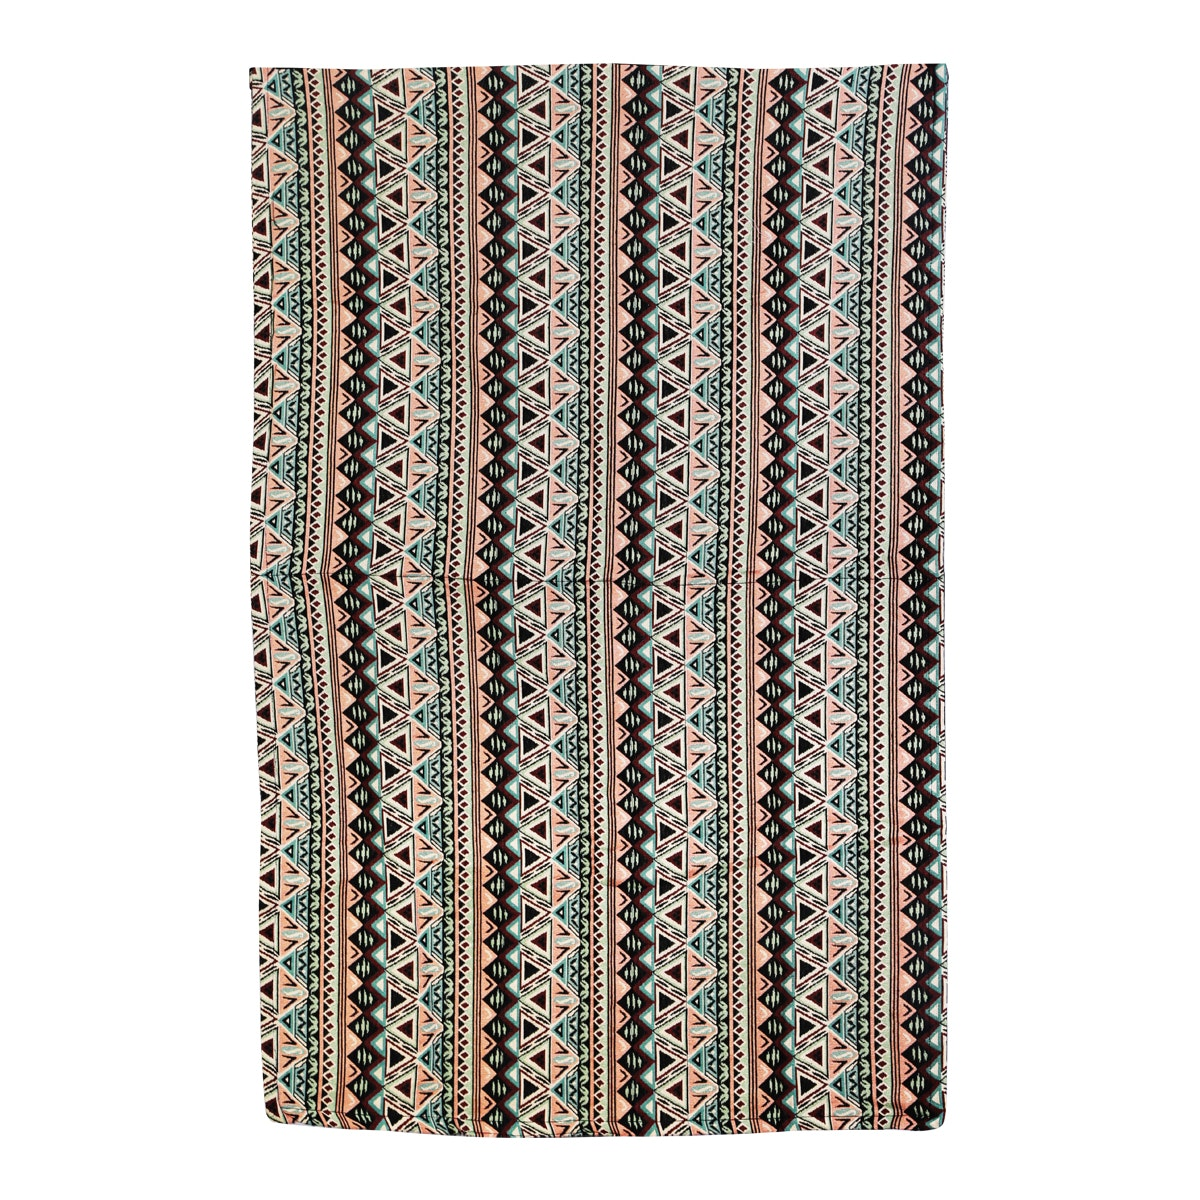 Chic For Home Ethnic Green Woven Rugs